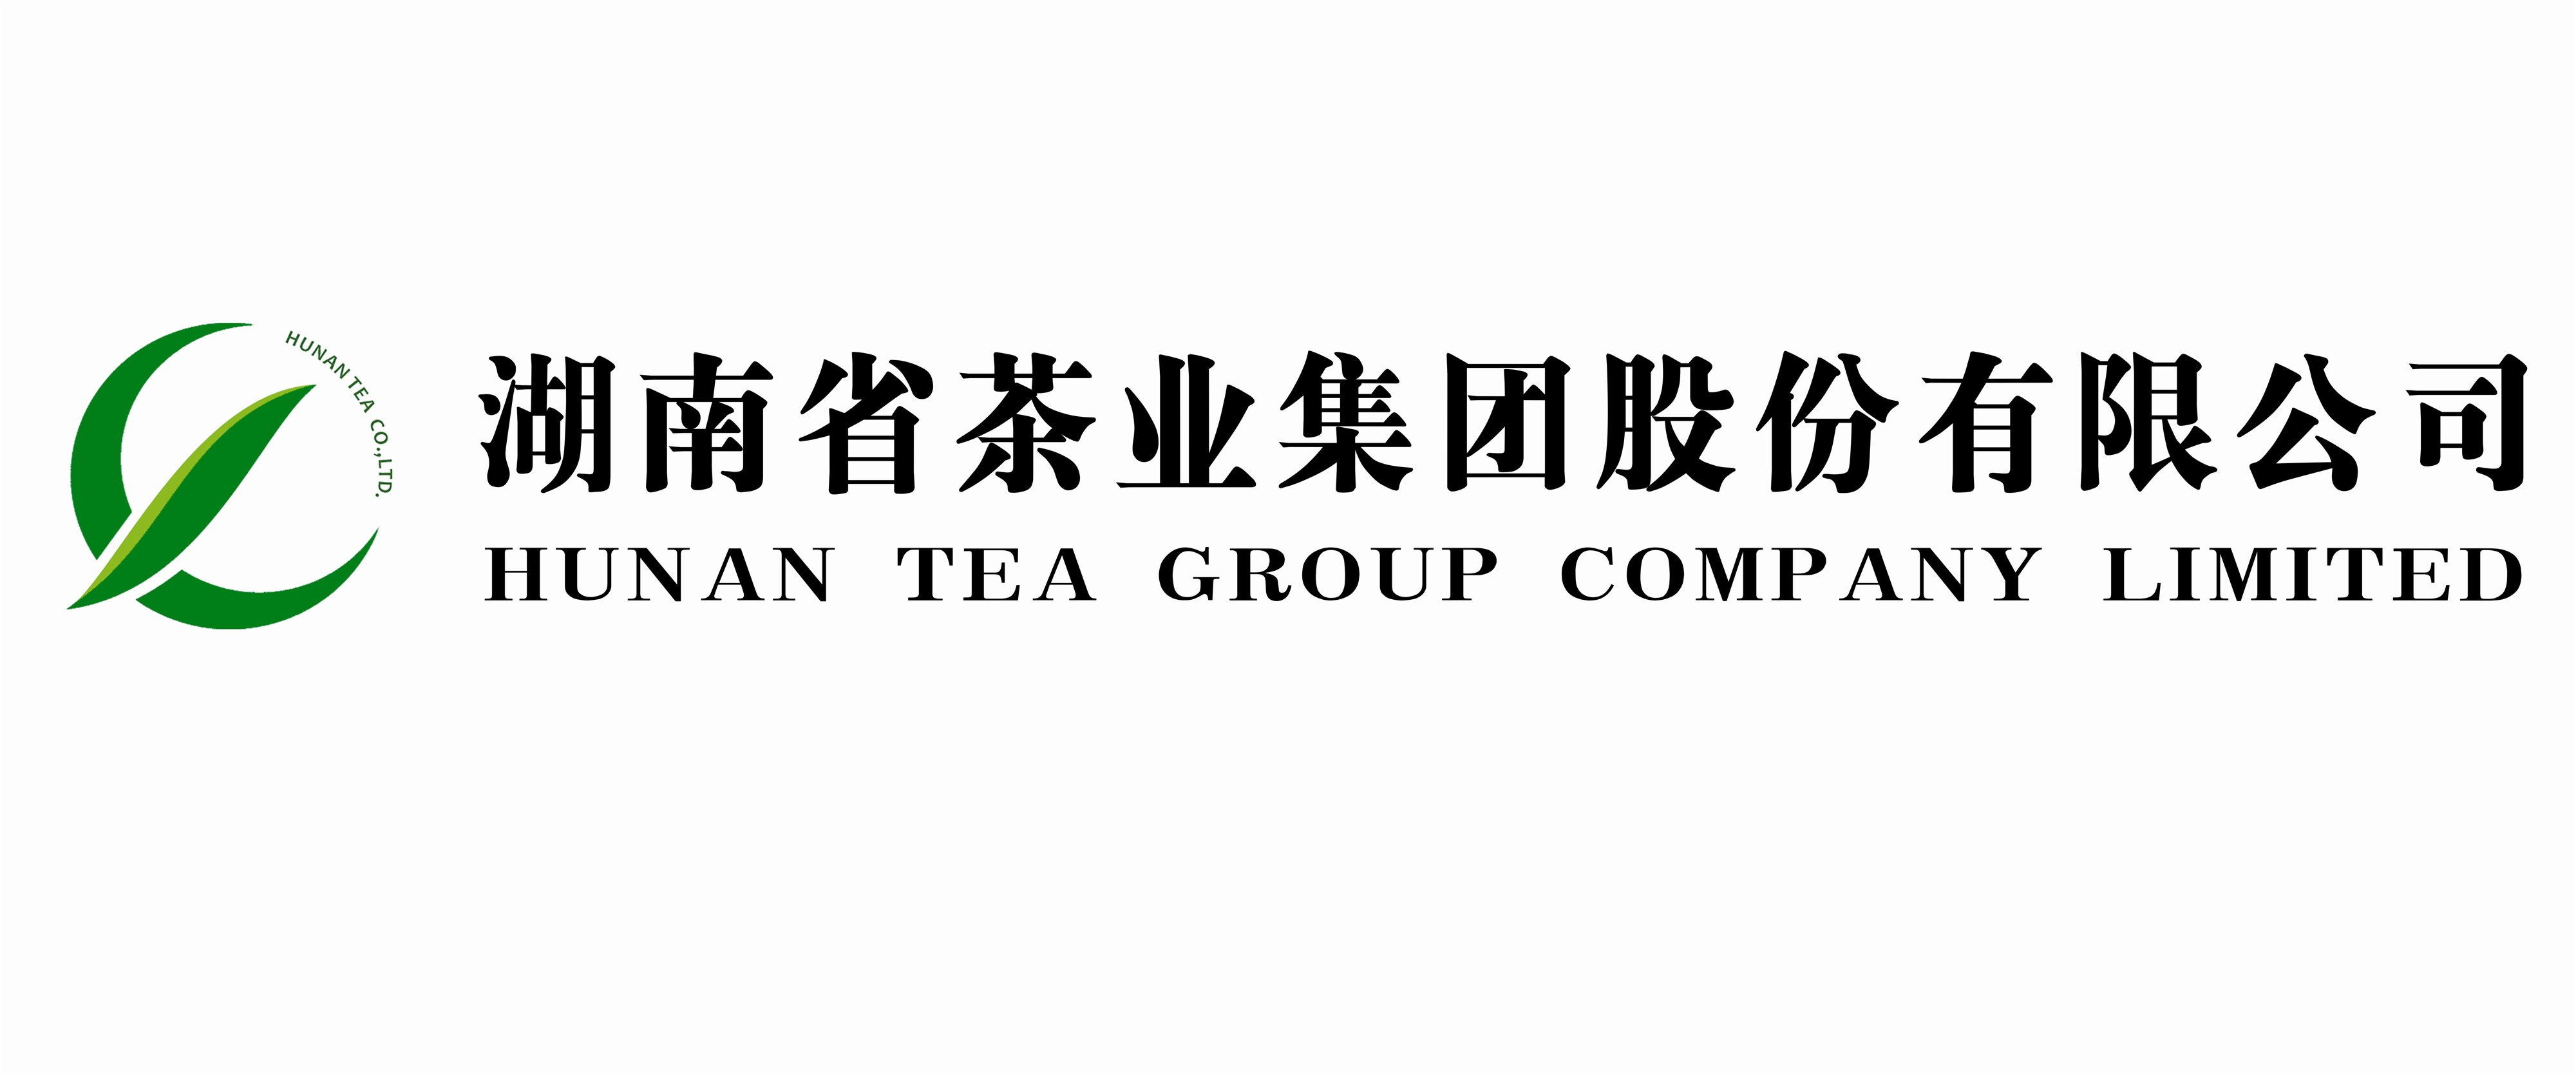 HUNAN TEA COMPANY LIMITED